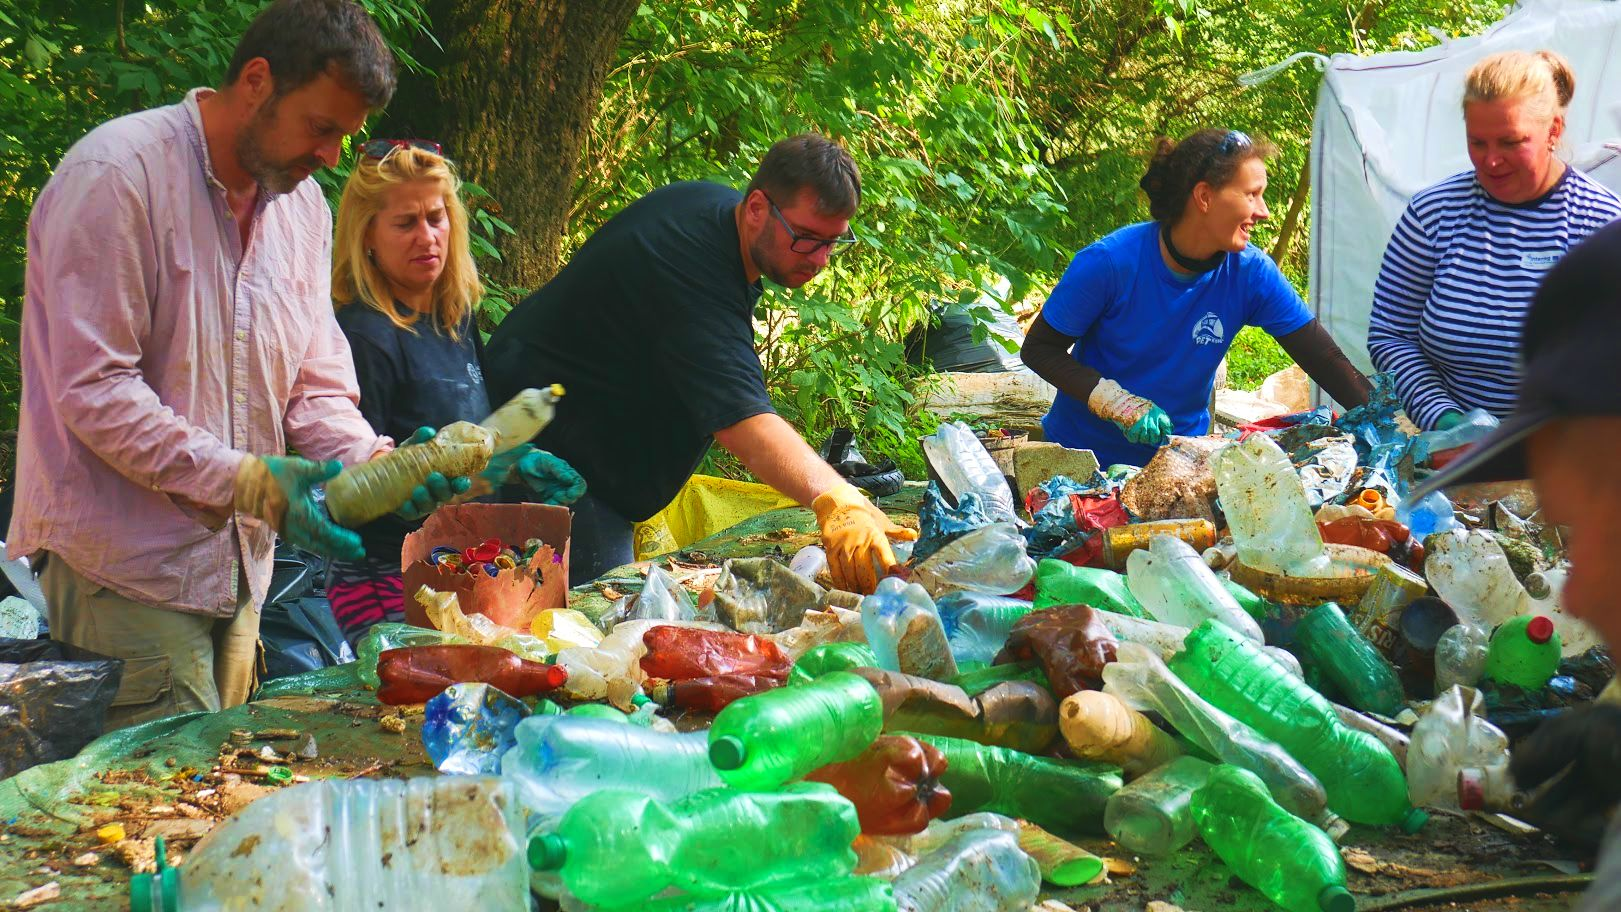 OVER 100 VOLUNTEERS, BODROG RIVER AND MORE THAN 6 TONS OF WASTE